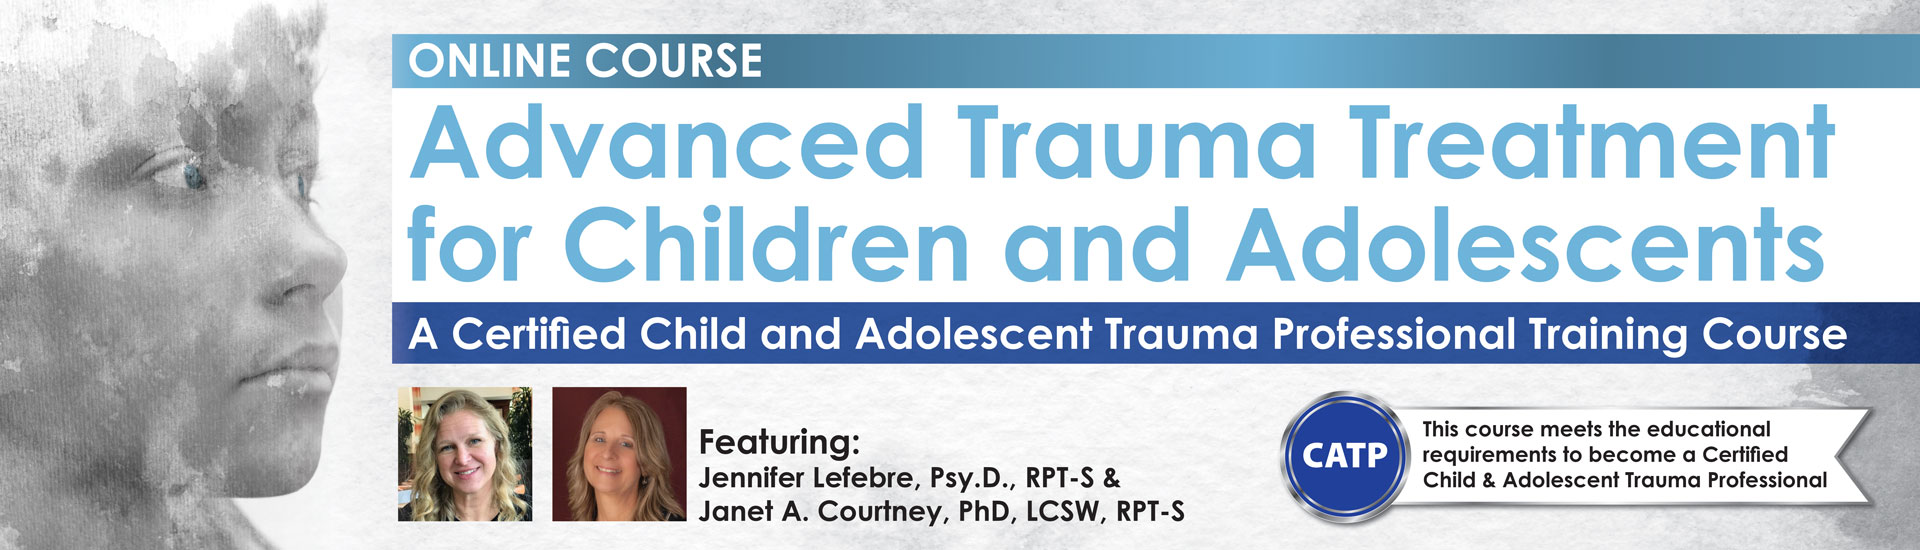 Advanced Trauma Treatment for Children and Adolescents